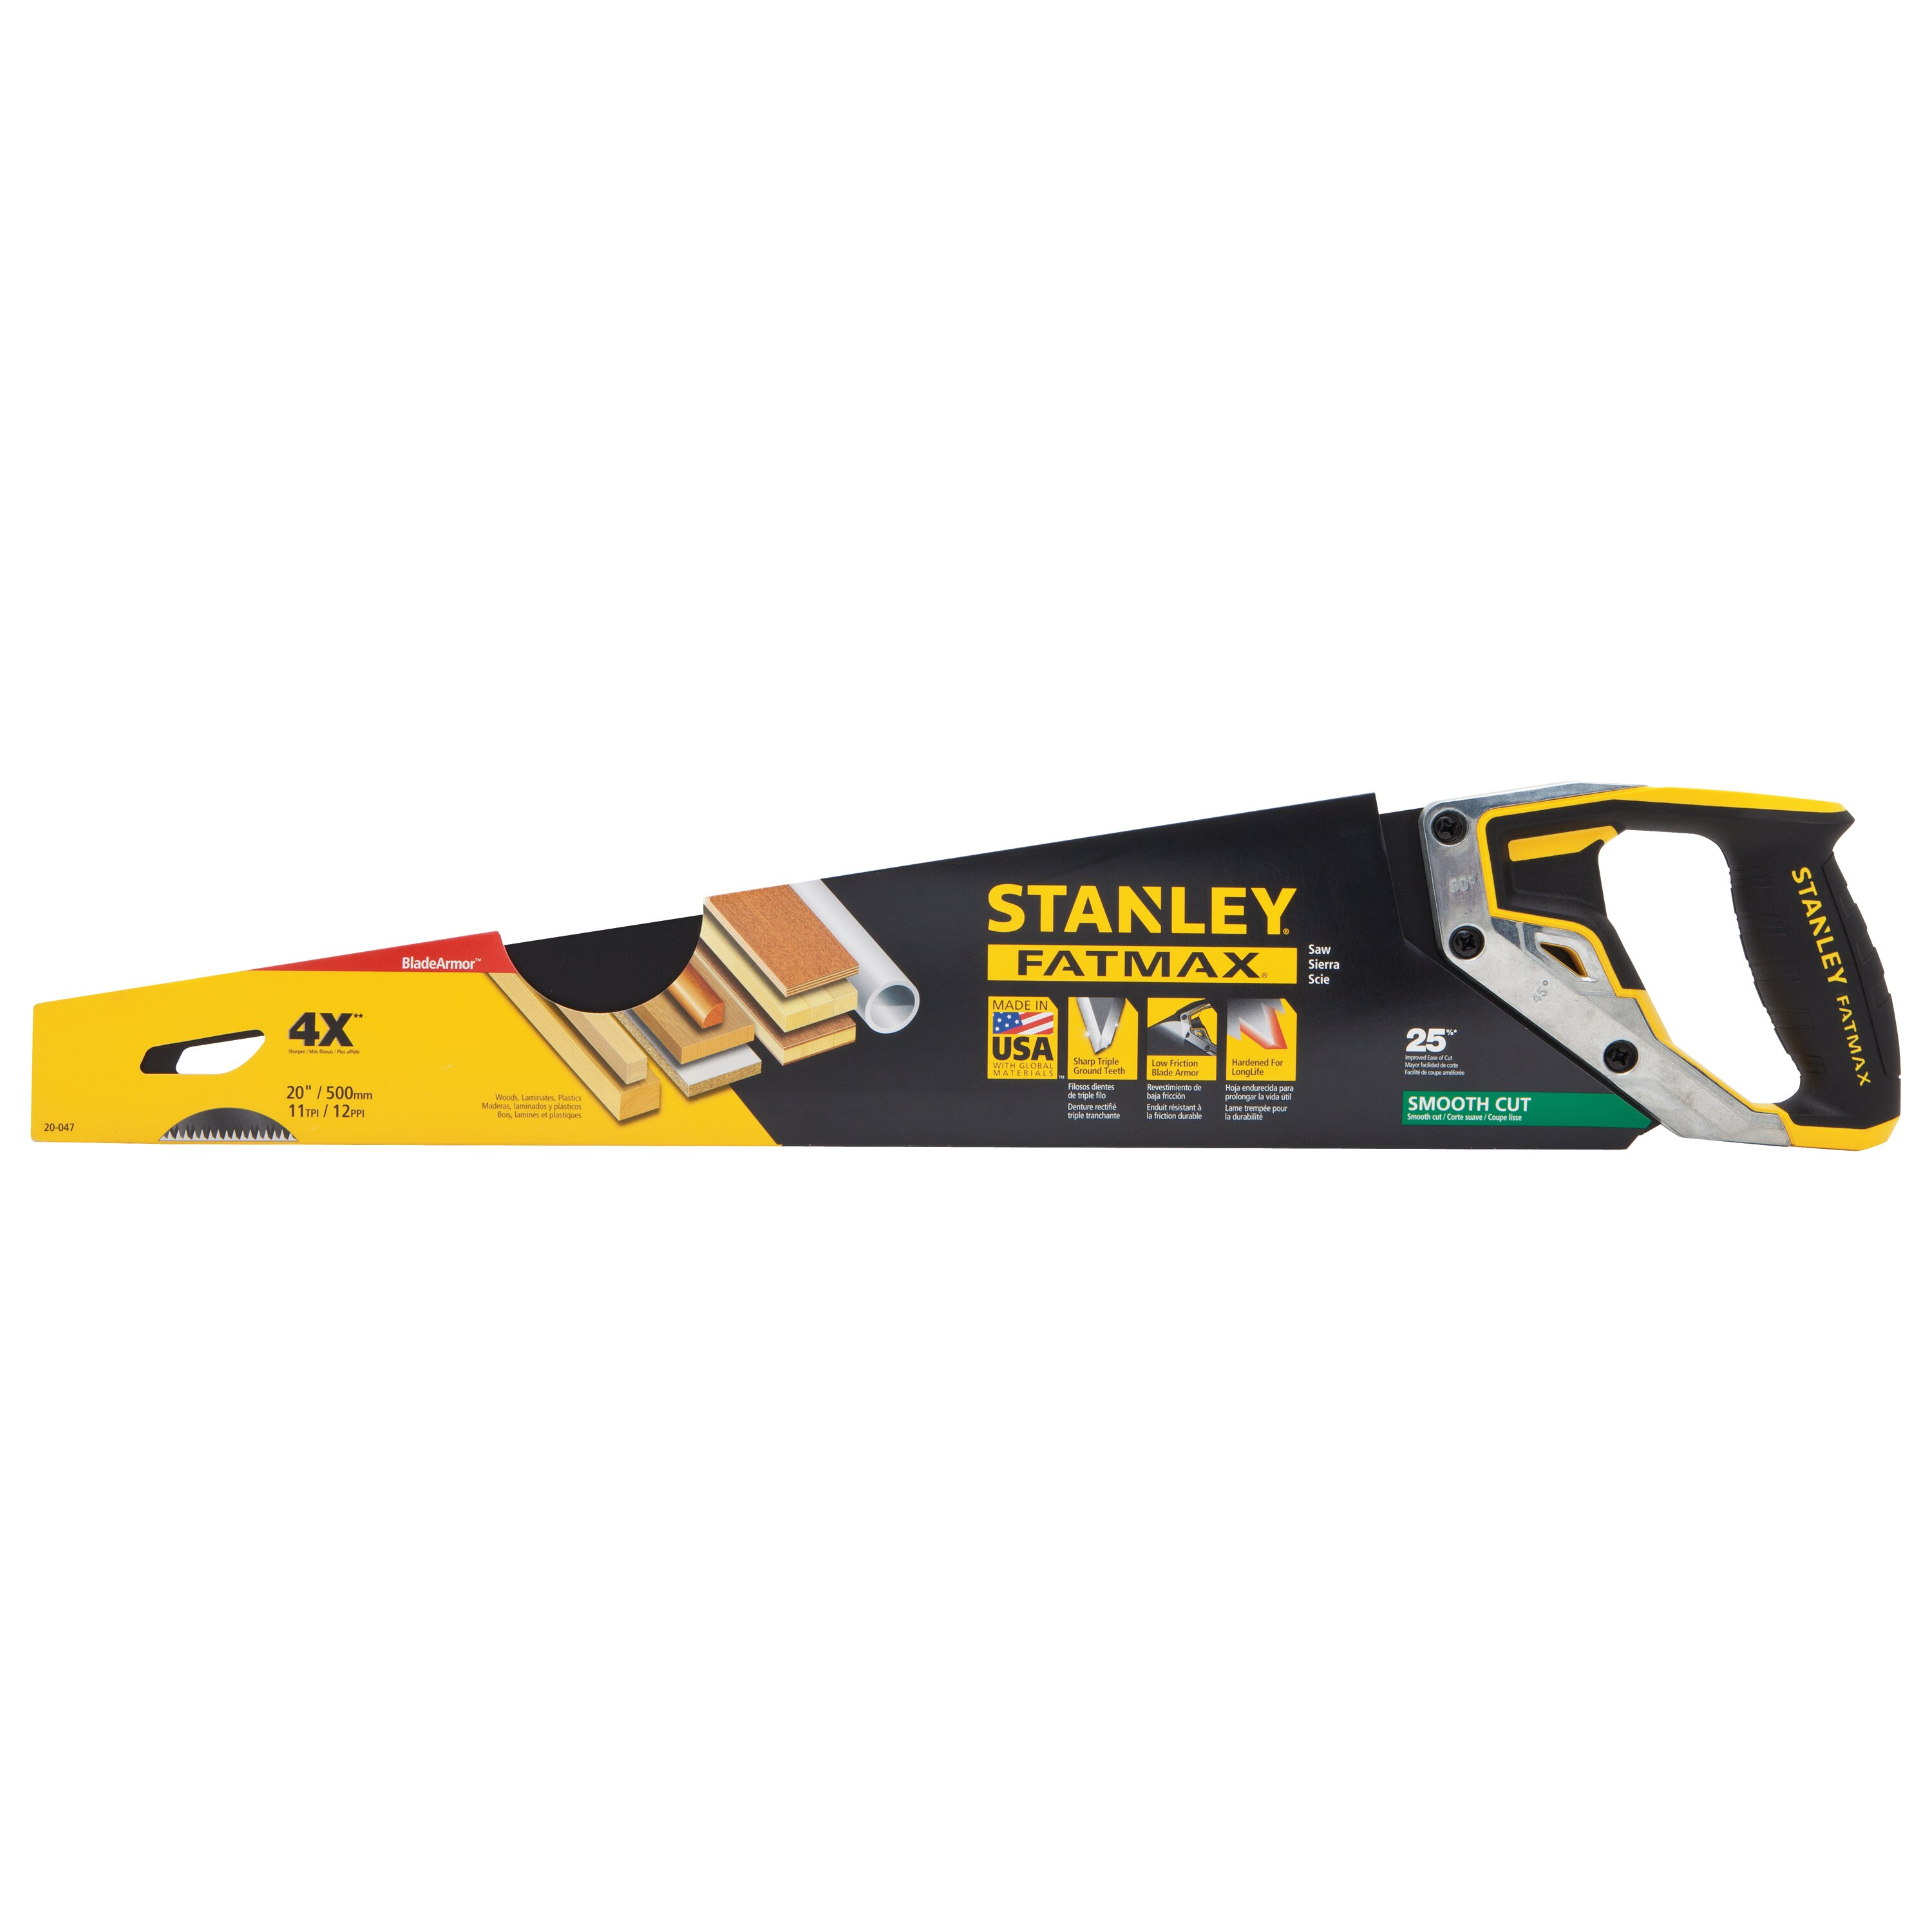 Stanley Tools - 20 in FATMAX TriMaterial Hand Saw - 20-047